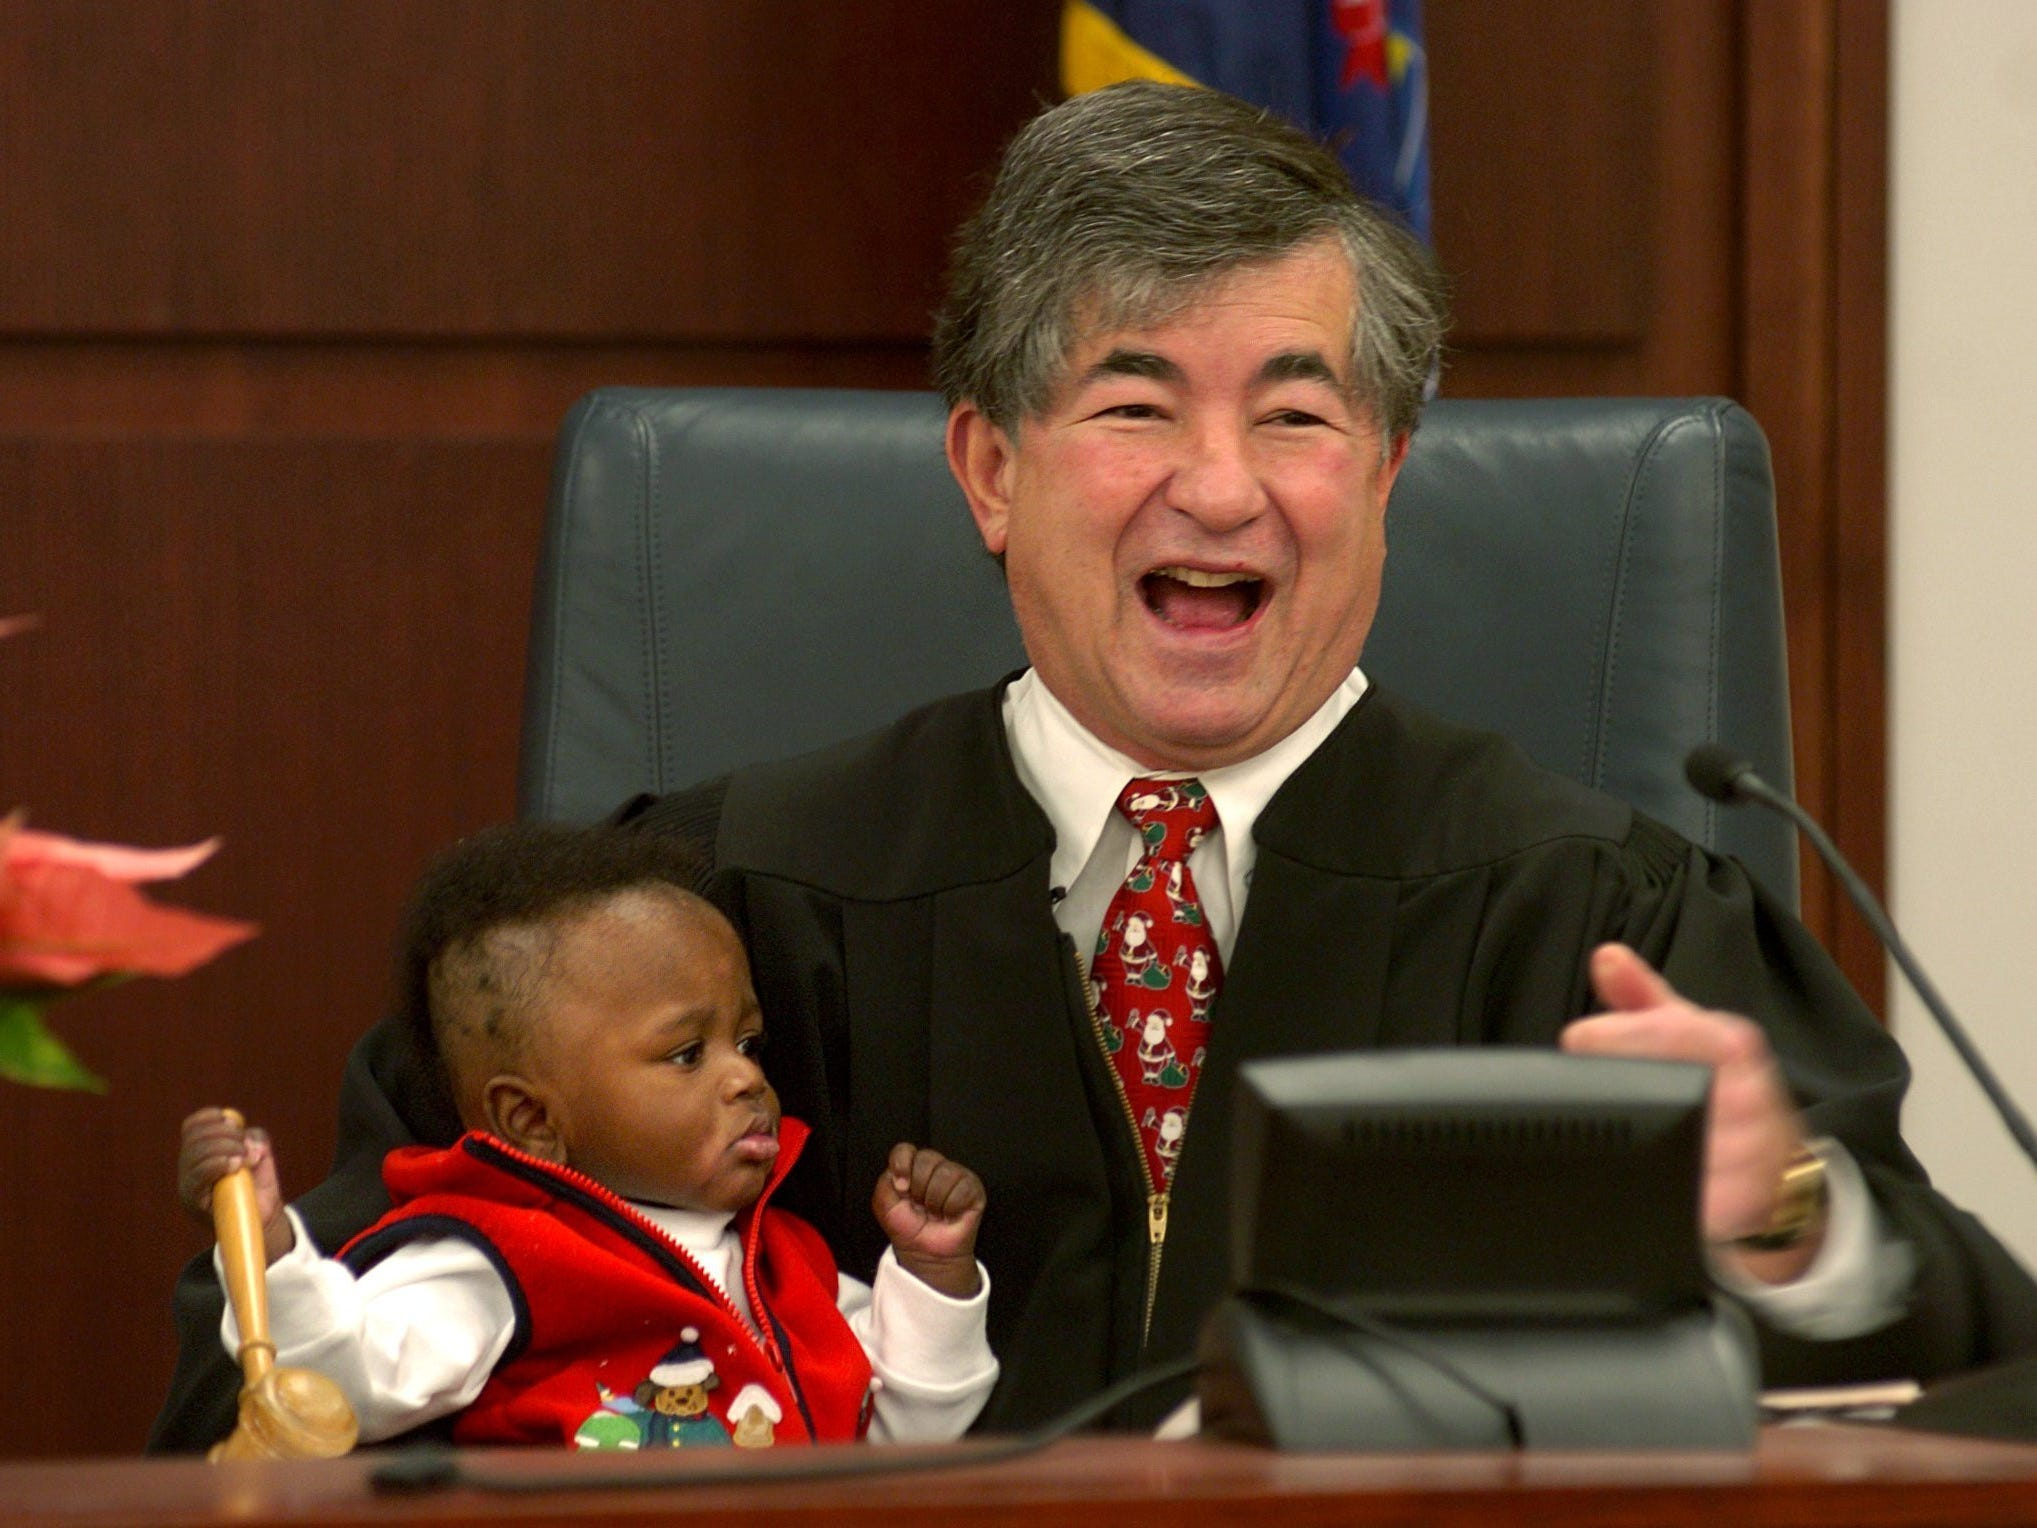 Judge George Economy laughs after handing the gavel to Robert Lamb, 6 months, during his adoption proceedings Dec. 22, 2004. Robert was adopted by Michael and Holly Lamb.